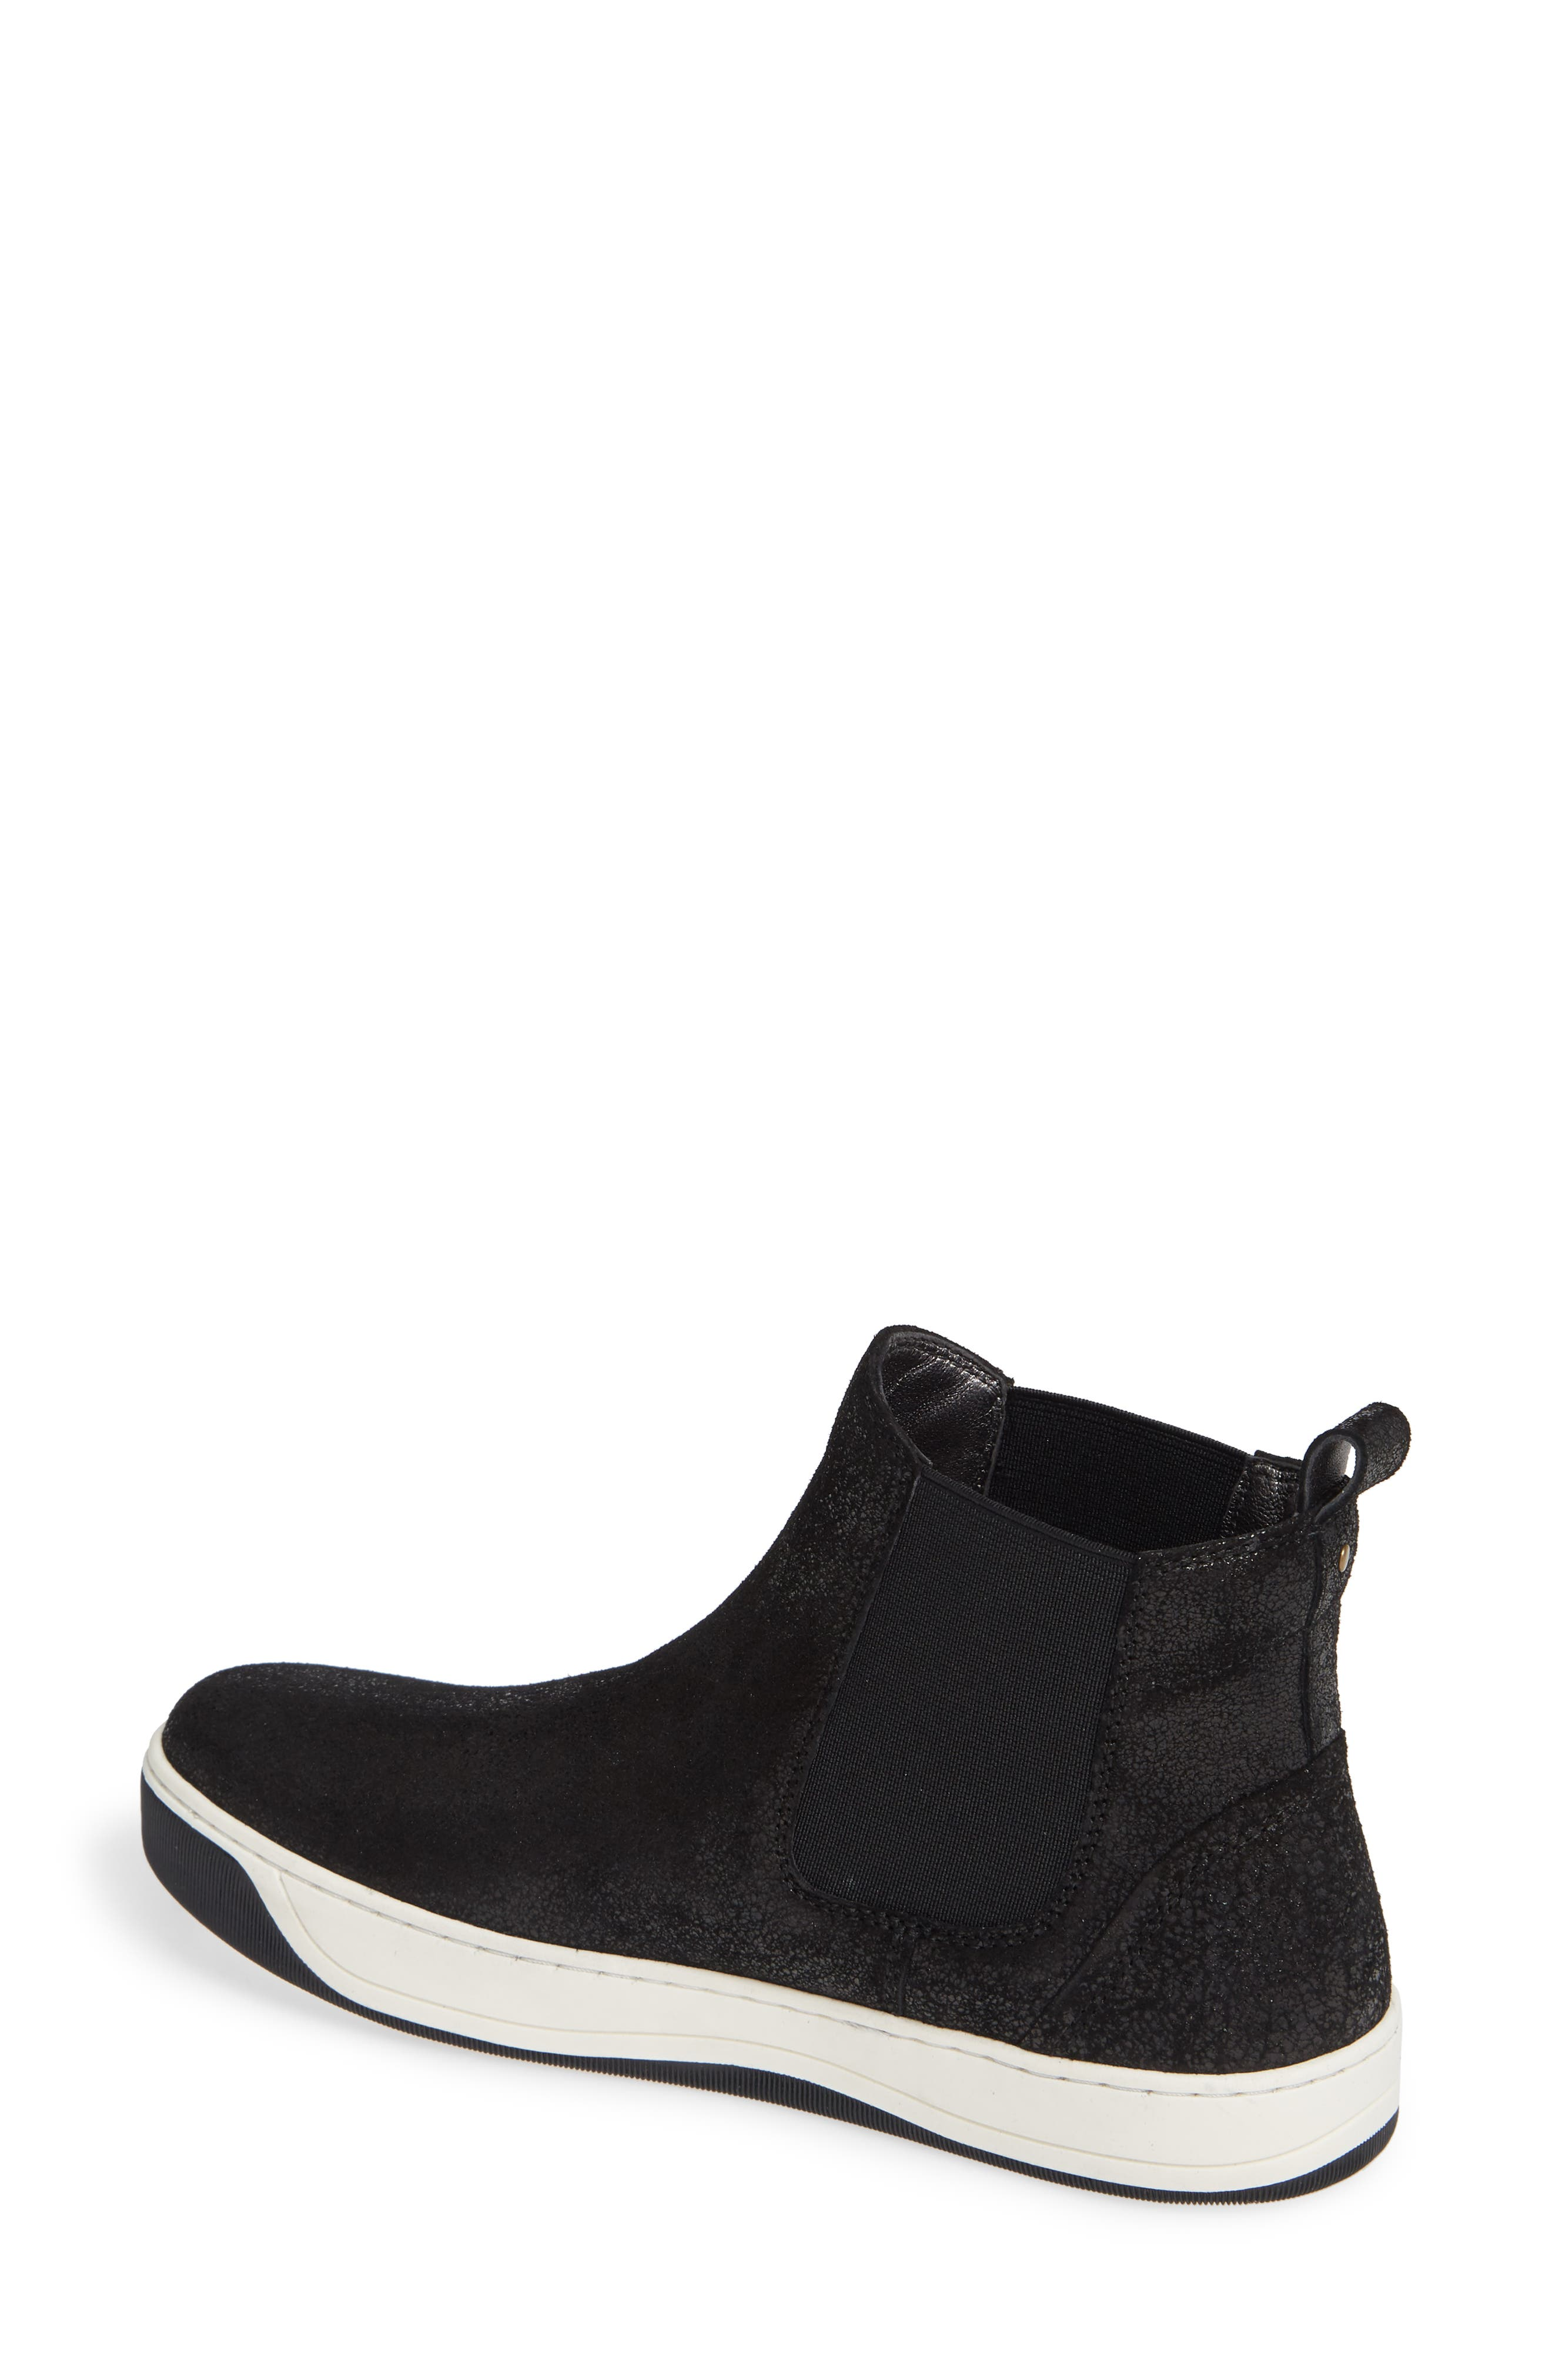 Erica High Top Sneaker,                             Alternate thumbnail 2, color,                             BLACK LEATHER